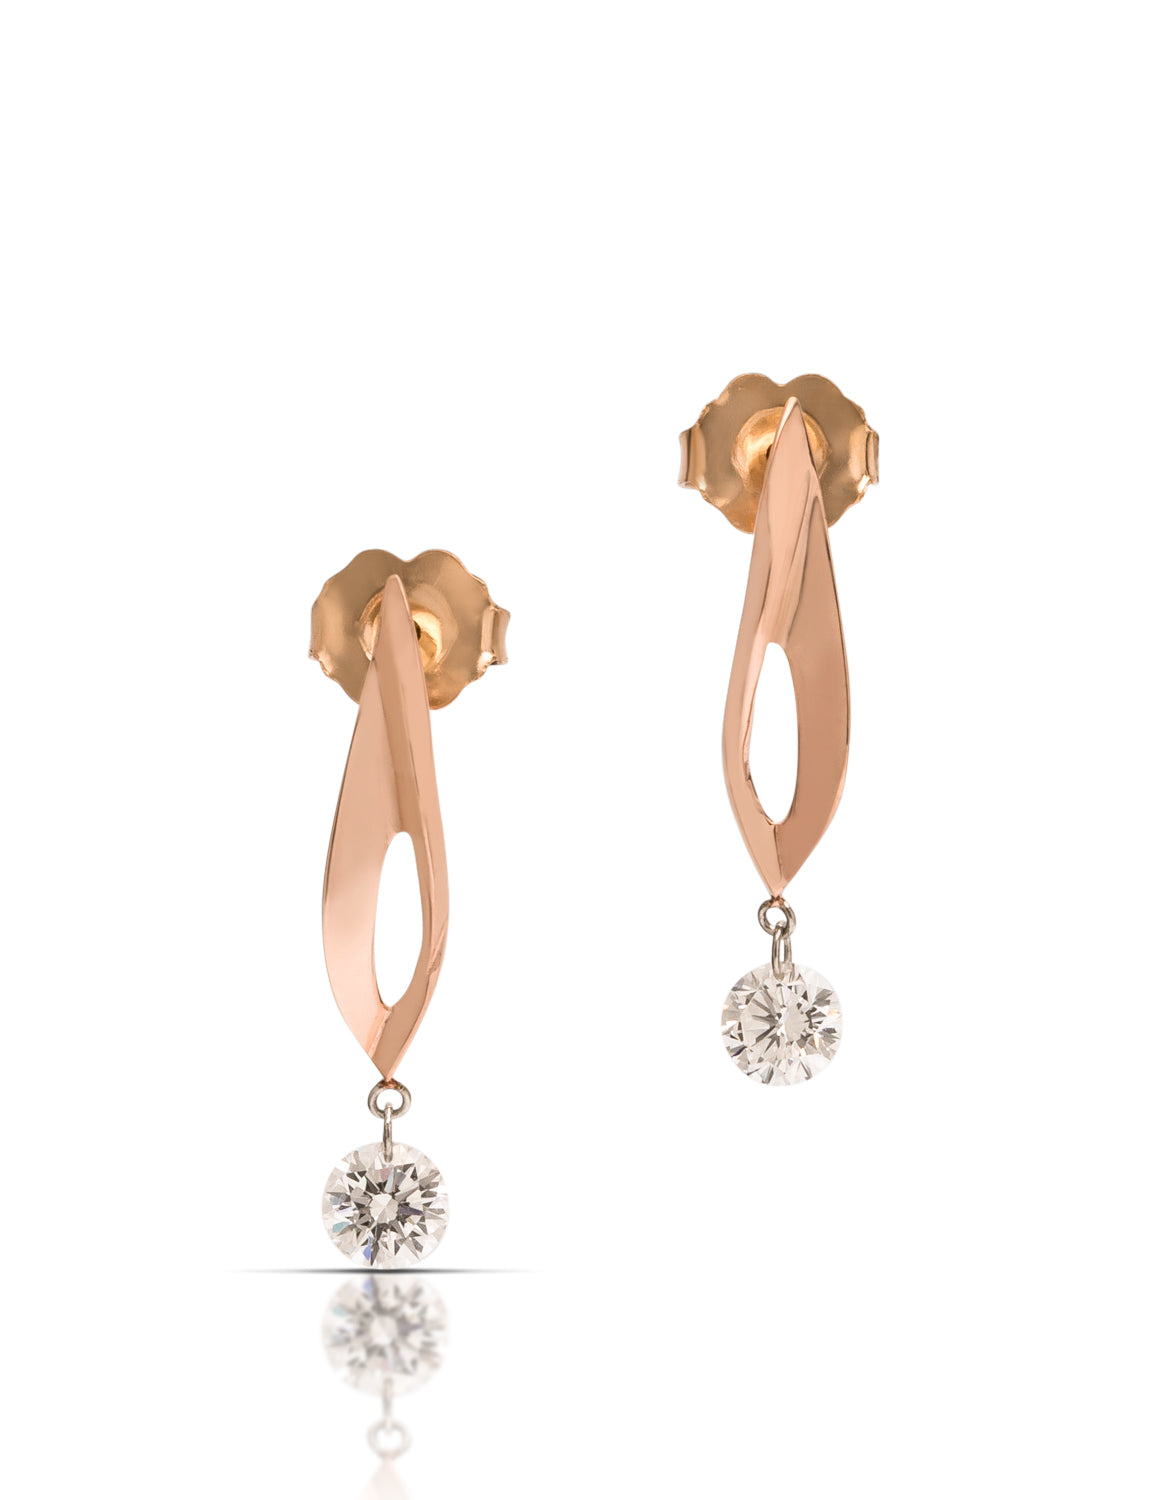 Dancing Diamond Rose Gold Earrings - Charles Koll Jewellers